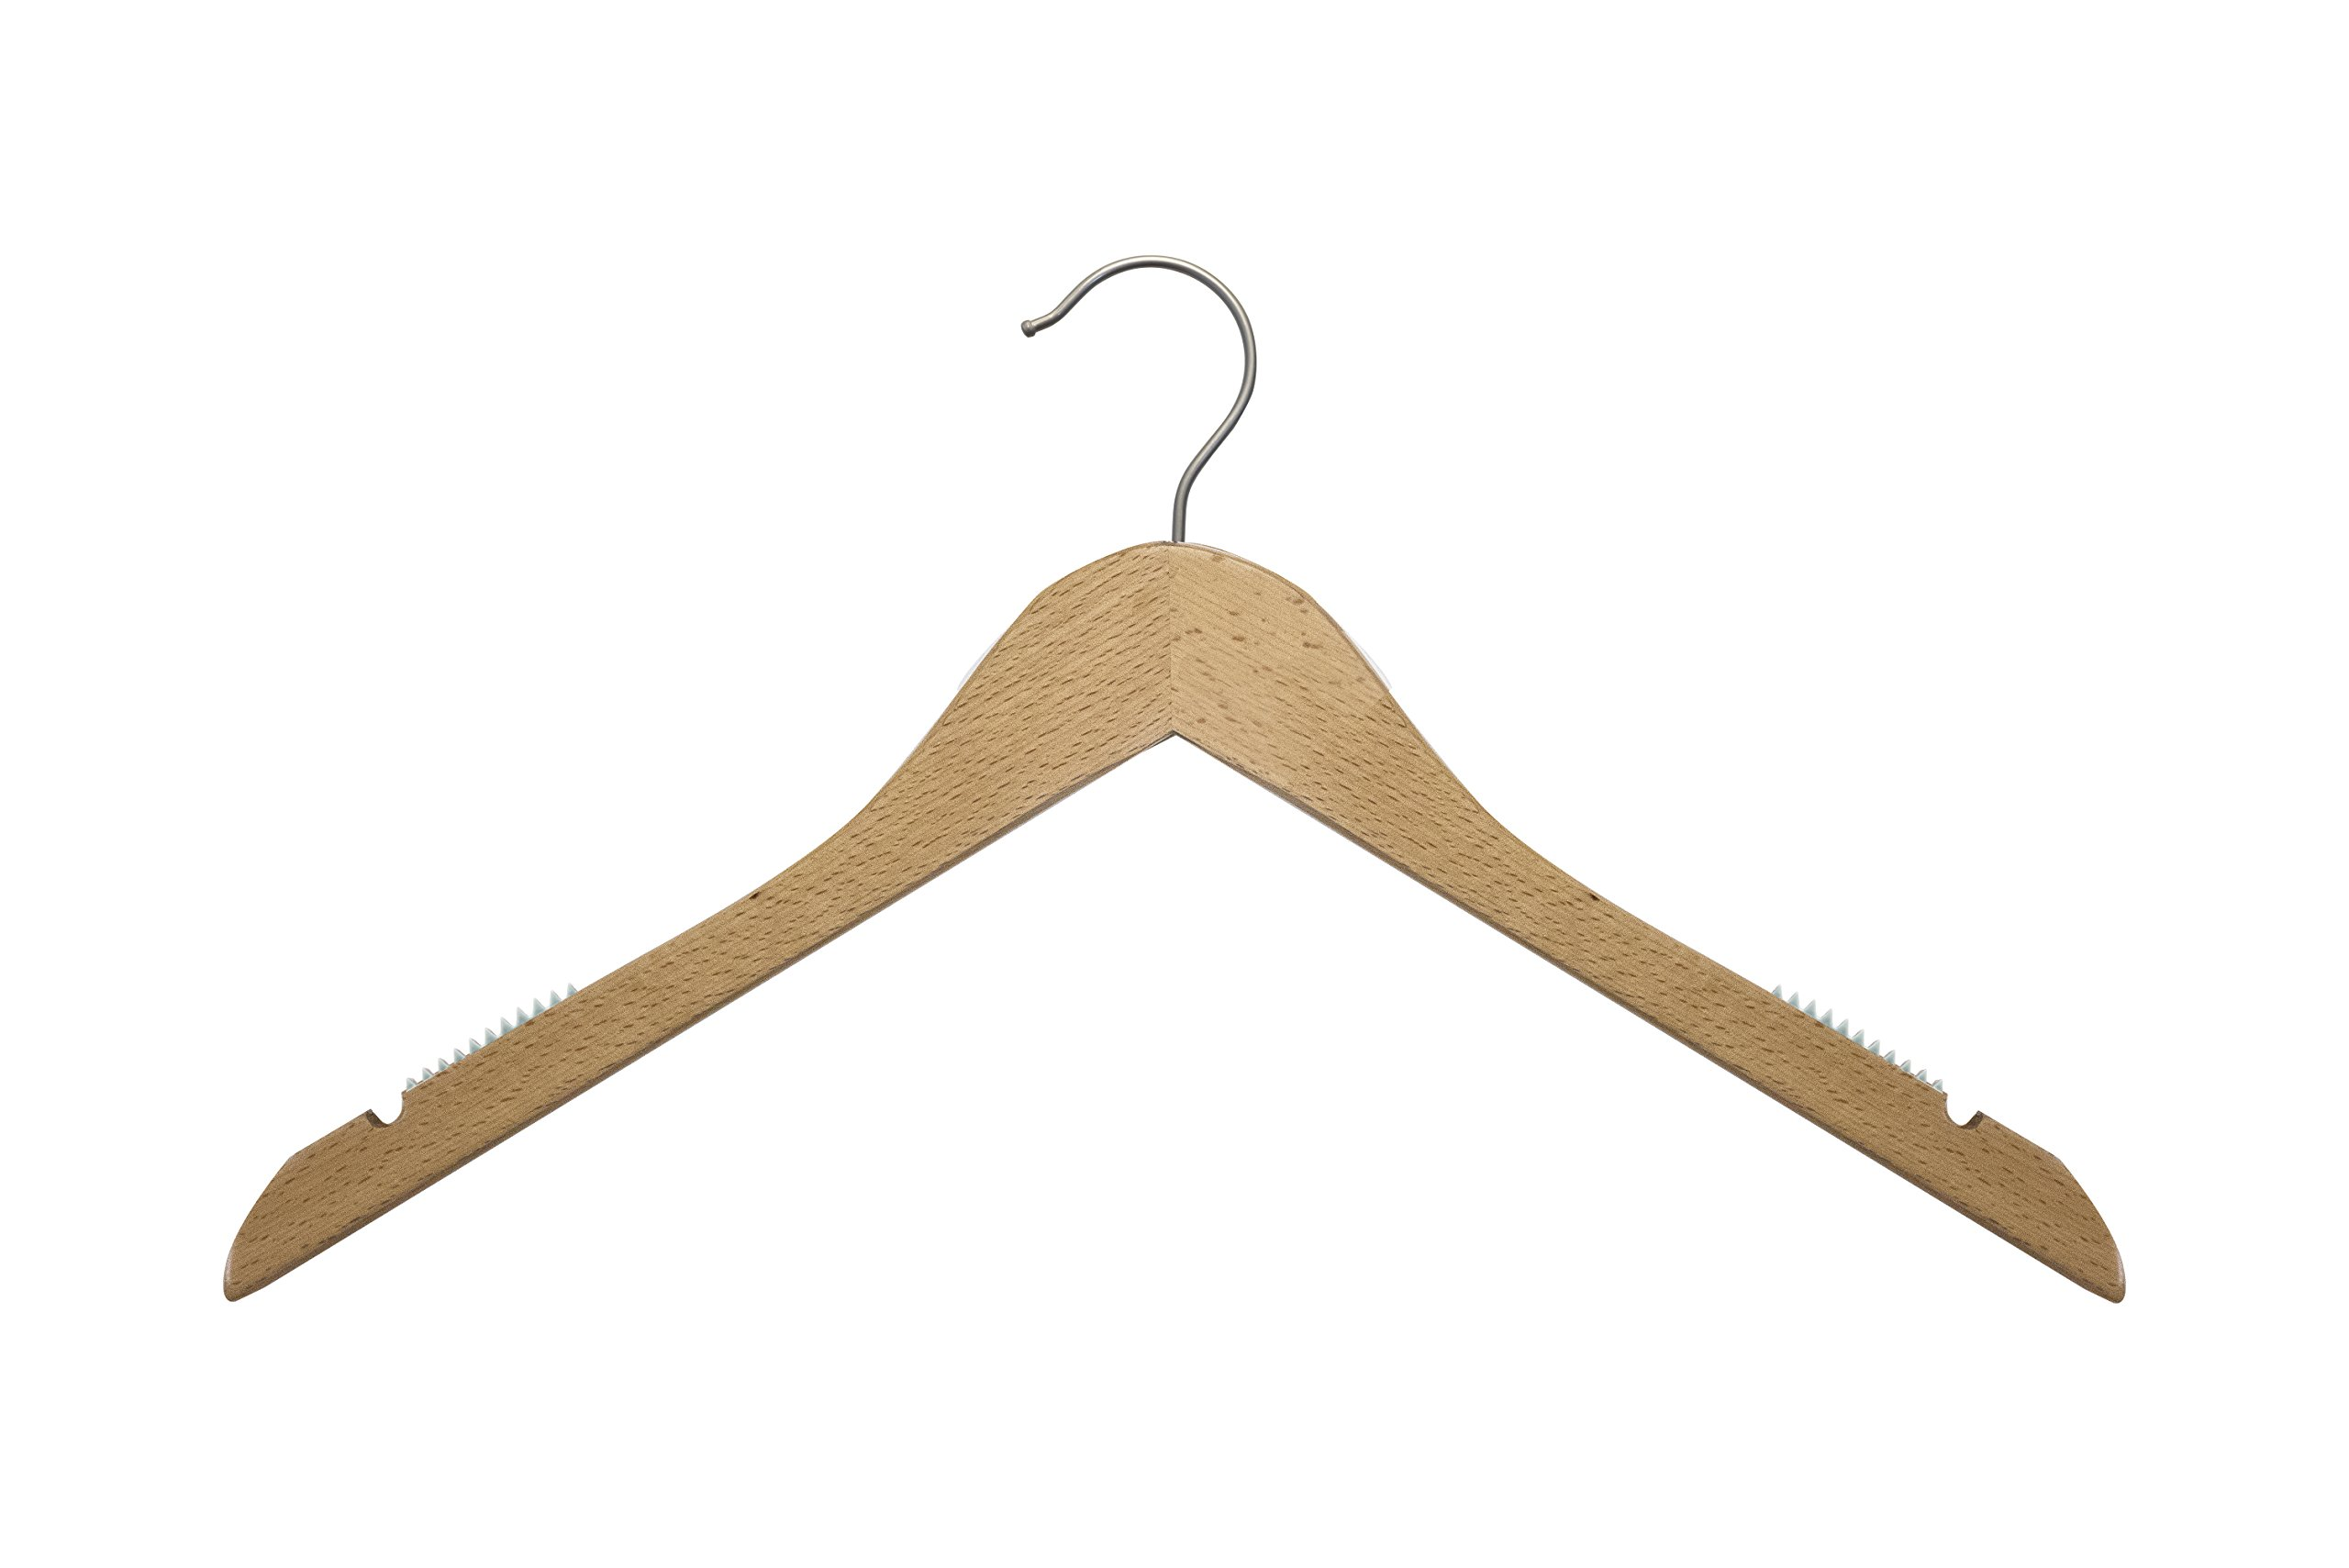 NAHANCO 20617 Wooden Top Hanger, Flat, 17'', Low Gloss Beech Finish (Pack of 100)